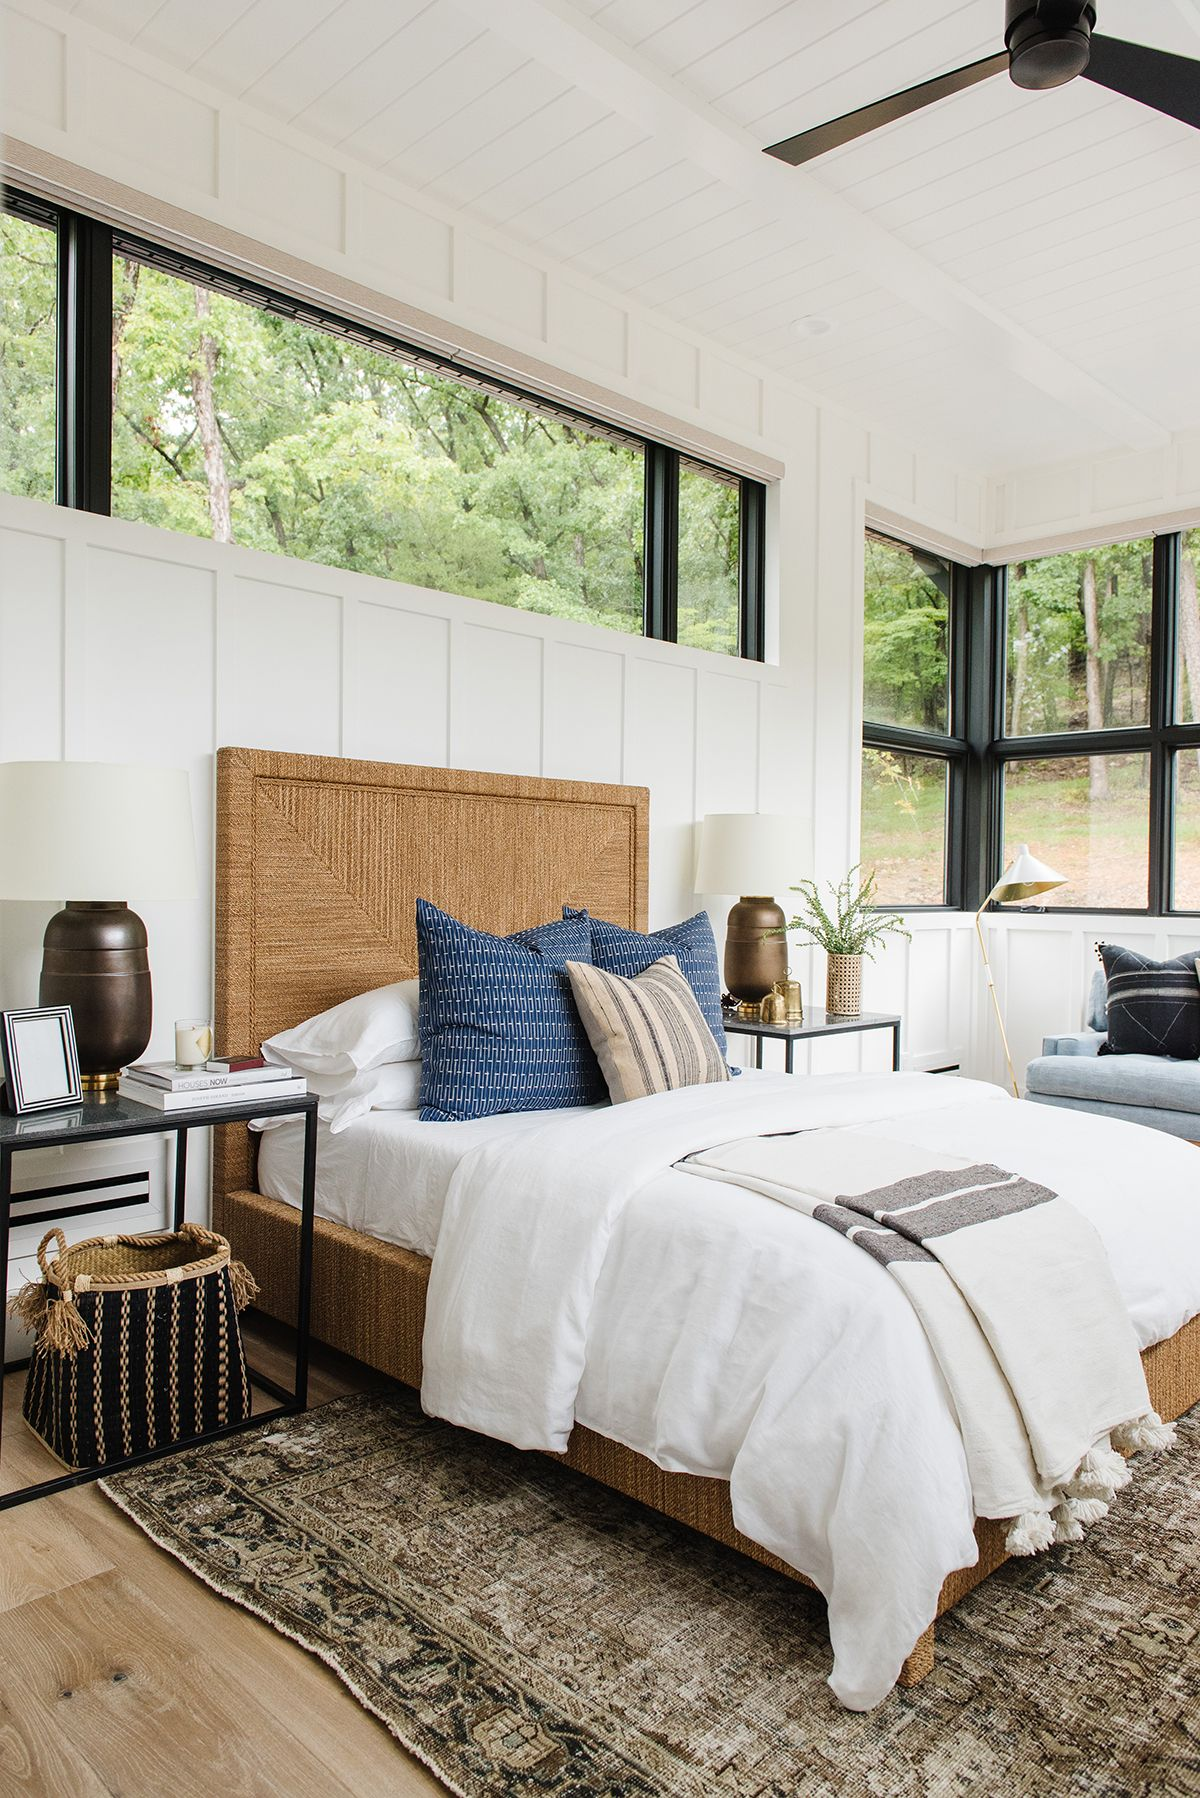 Modern Lake House Photo Tour: The Bedroom Wing | Home ...